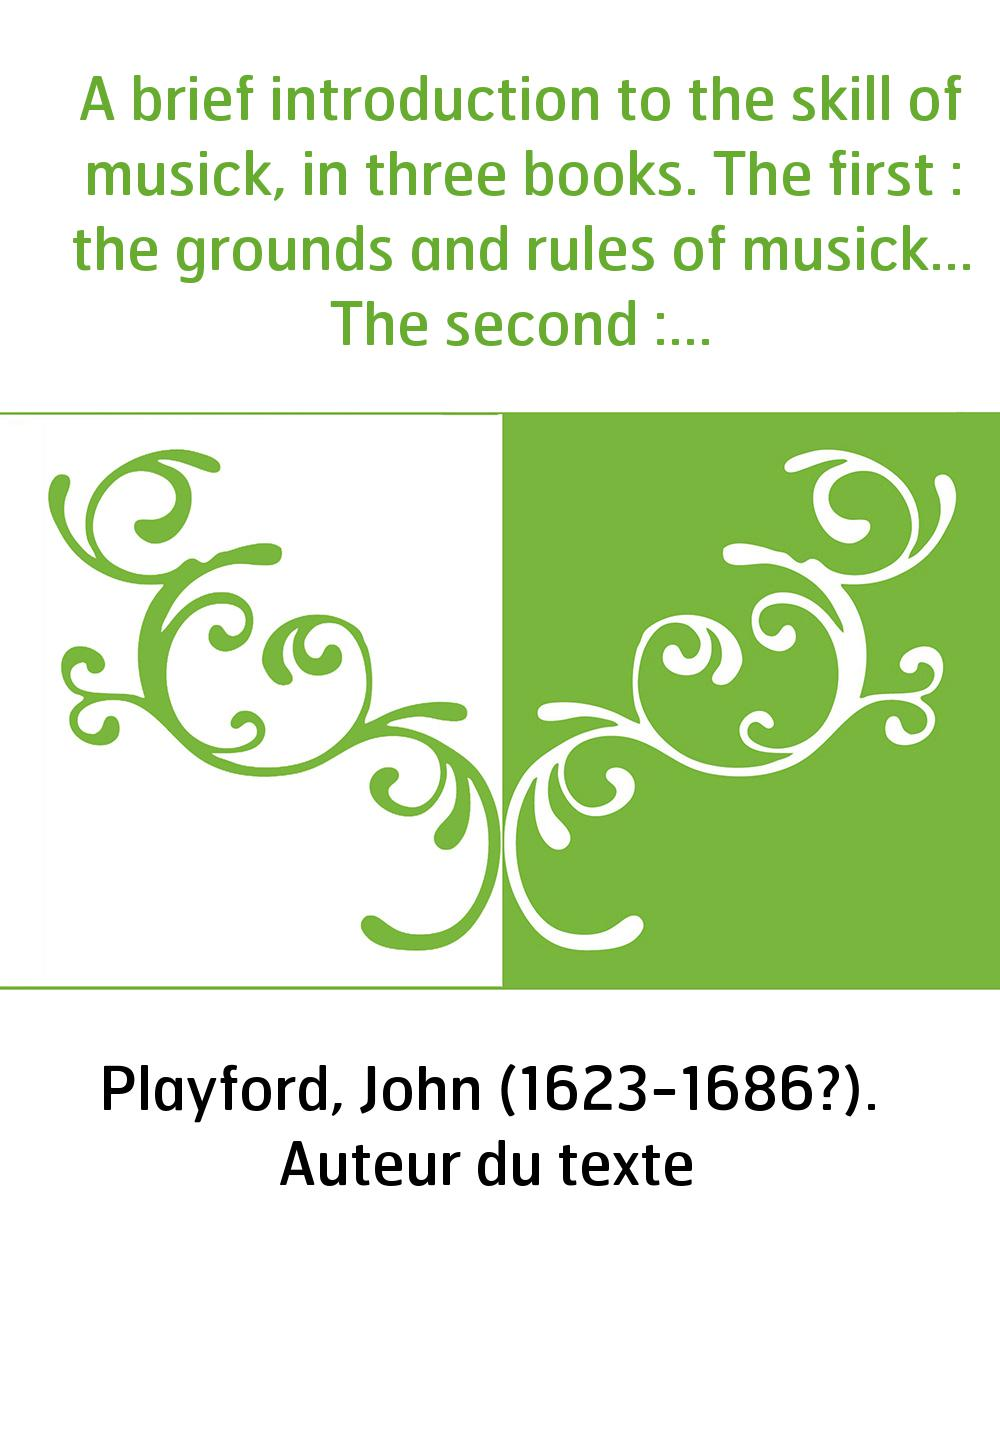 A brief introduction to the skill of musick, in three books. The first : the grounds and rules of musick... The second : instruc